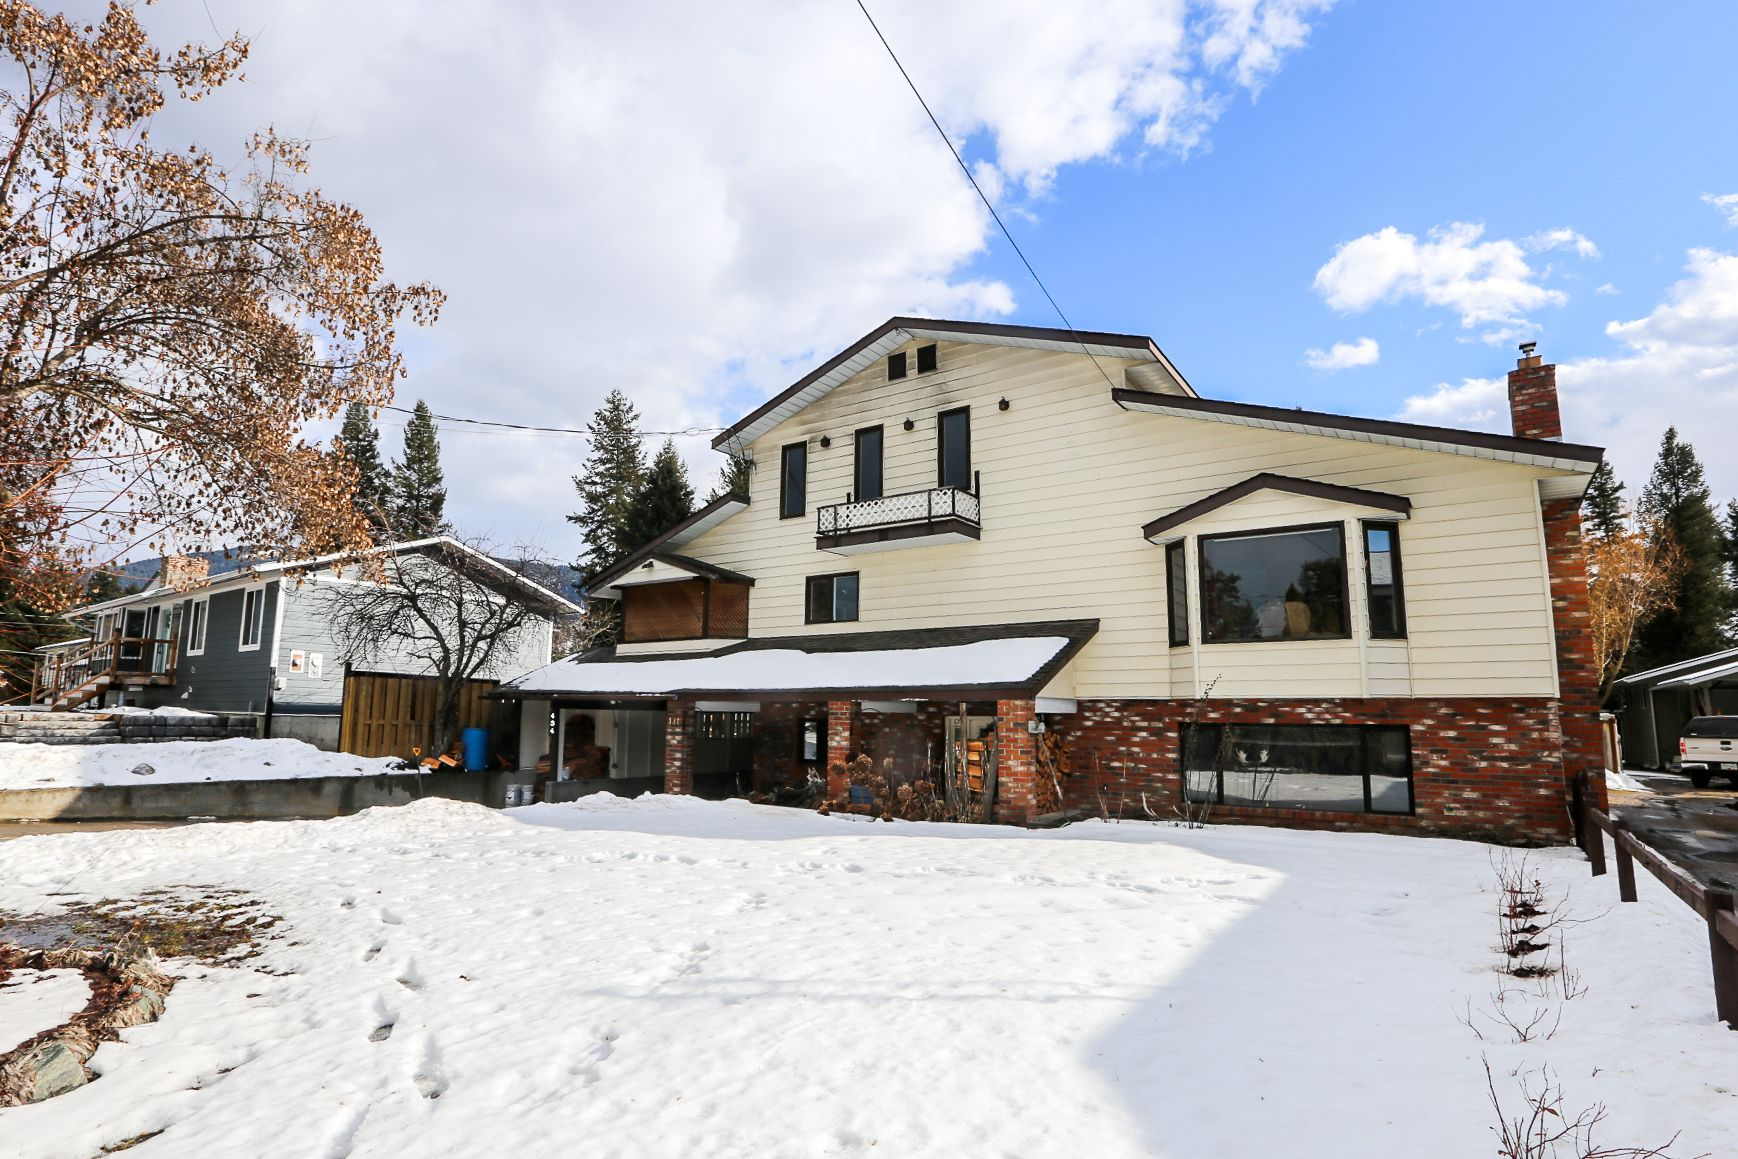 Photo 29: Photos: 434 ROBIN DRIVE: BARRIERE House for sale (NORTH EAST)  : MLS®# 160553